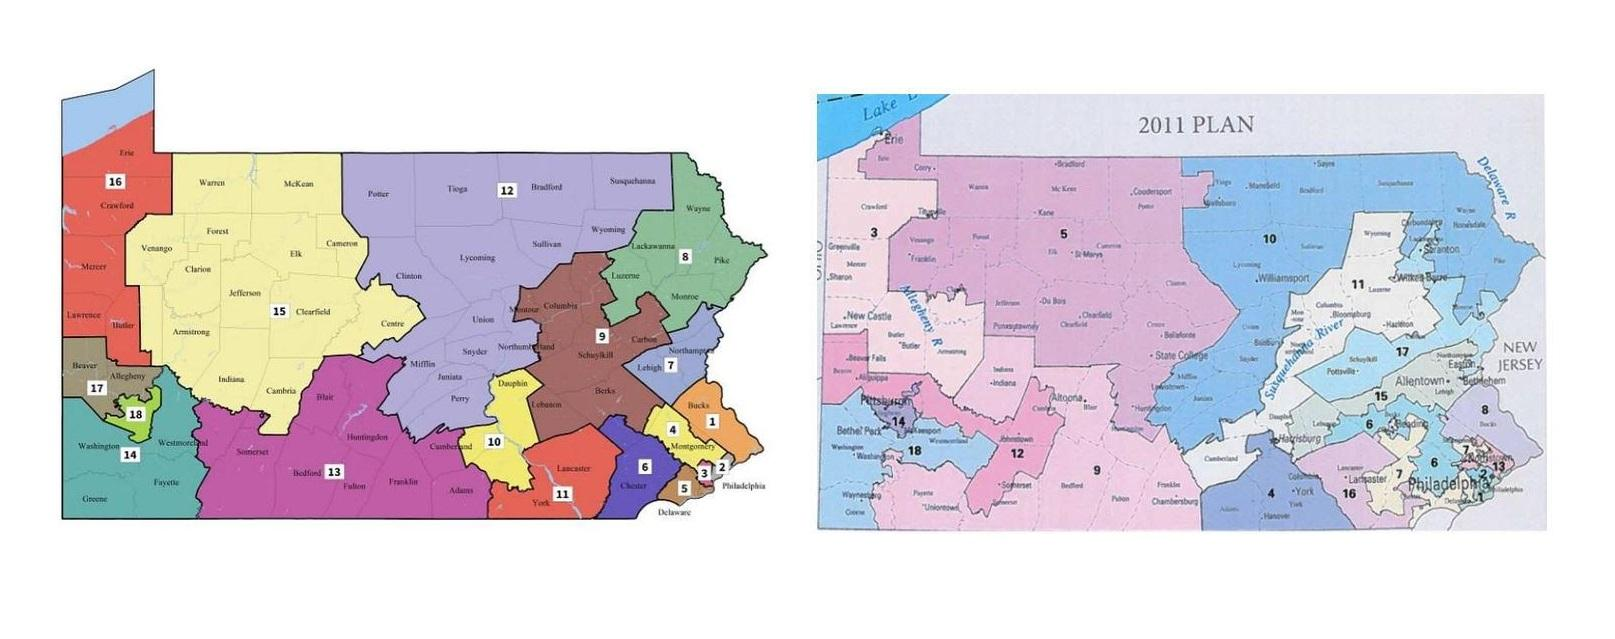 three federal judges will decide if the pennsylvania supreme court drawn congressional maps are consutionally sound the maps were created earlier this